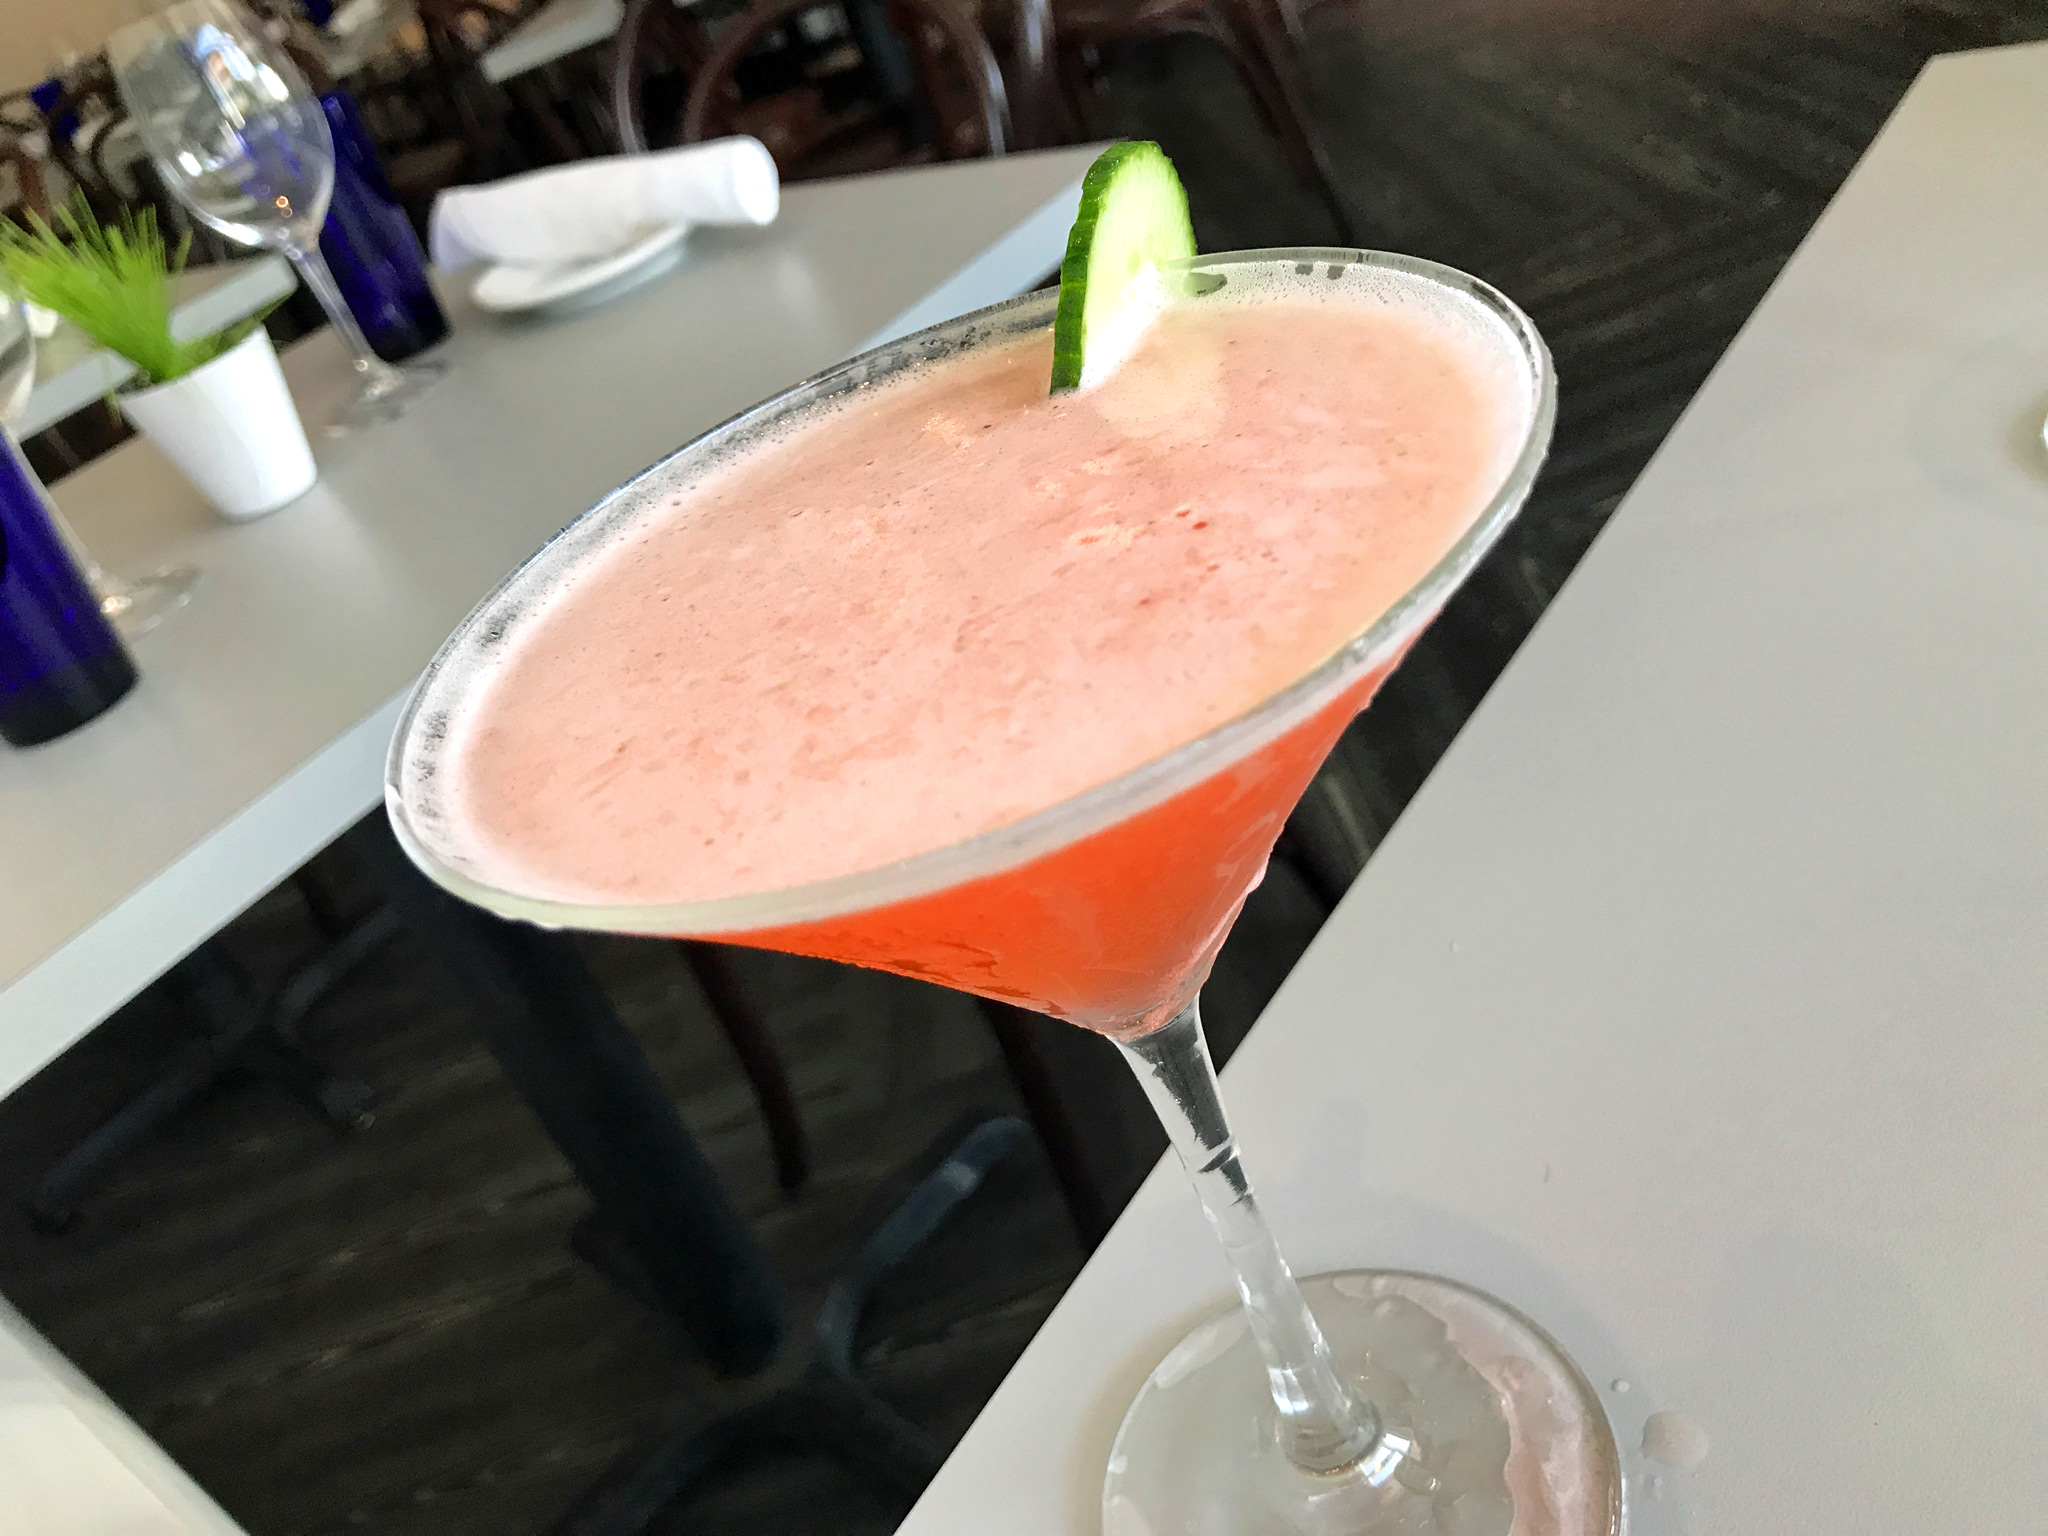 Hollyberry - Milagro, Cucumber, Limeade, Strawberry Shrub